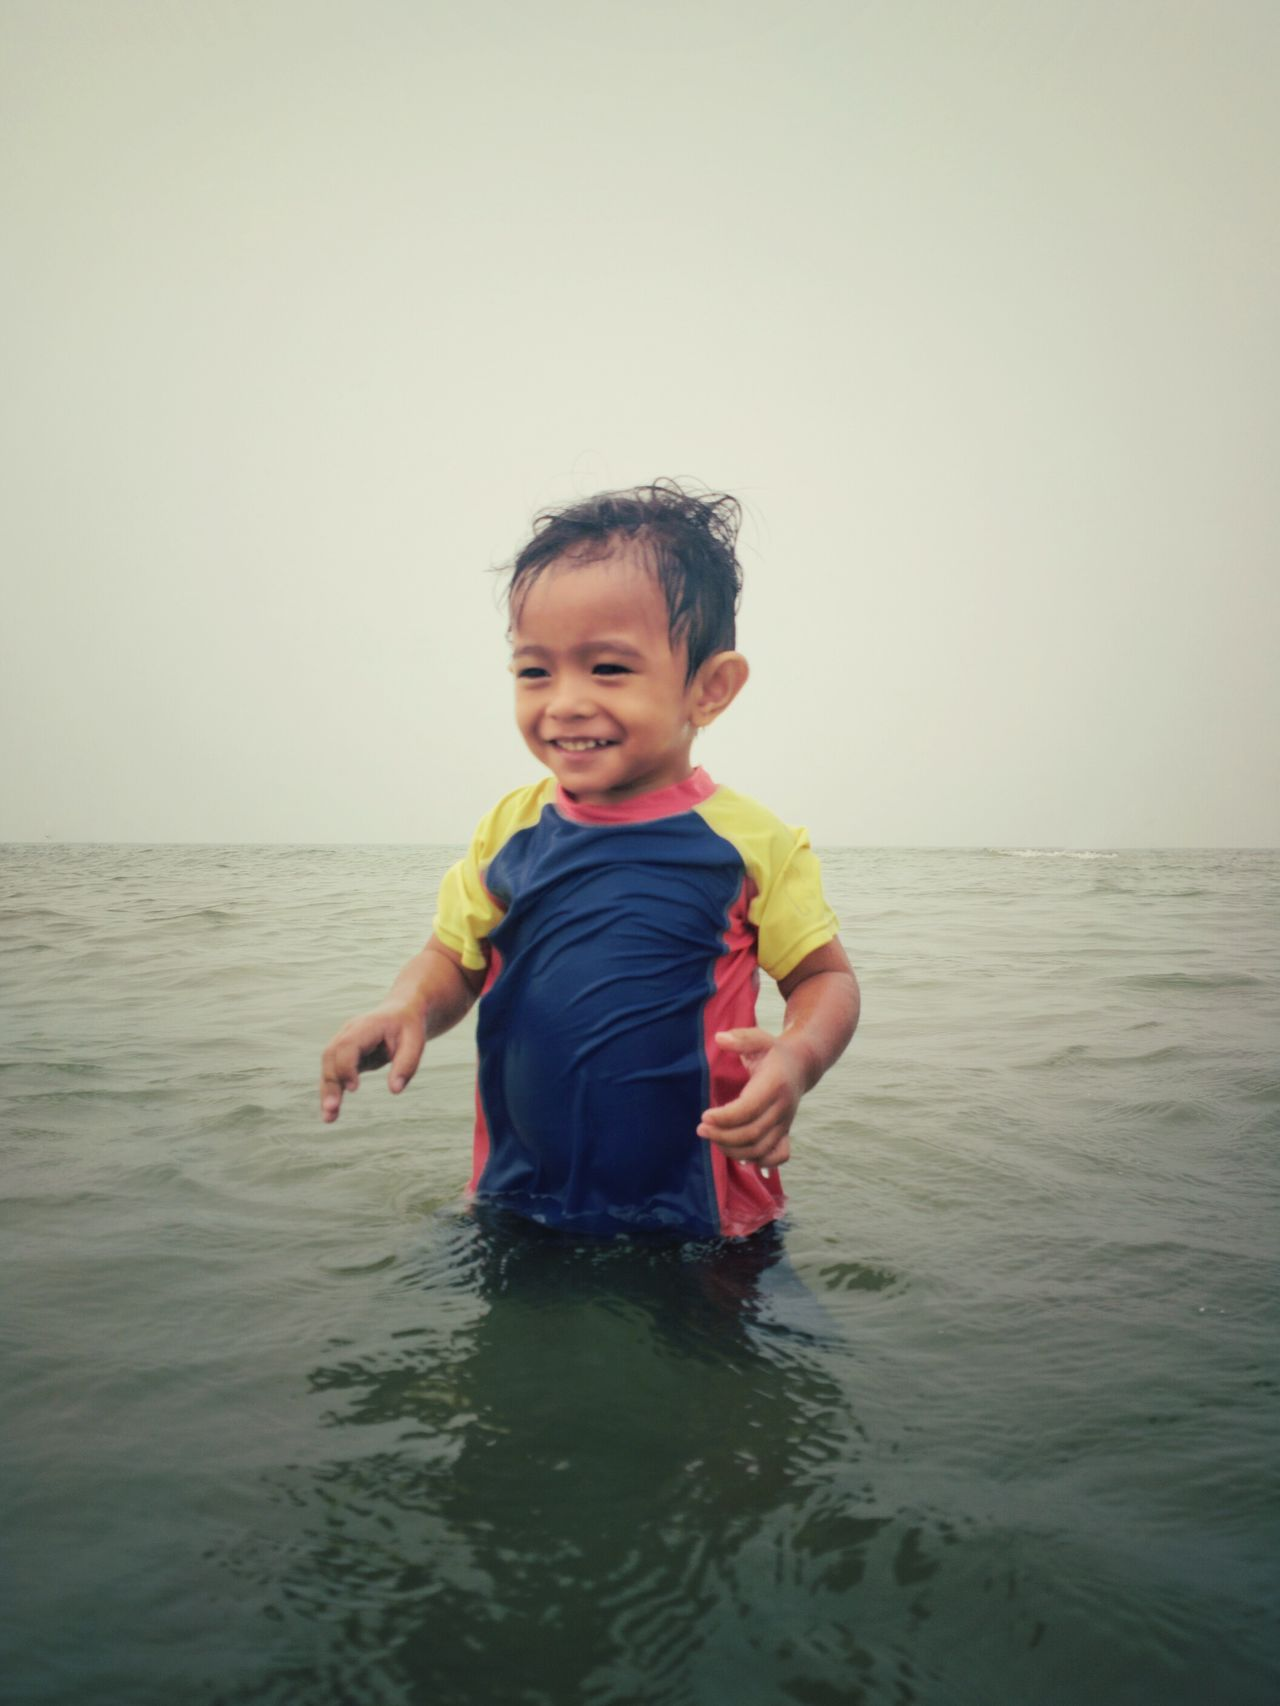 One Person Smiling Fun Childhood People Portrait Sea Full Length One Boy Only Beach Cute Holding Enjoyment Day Males  Happiness Water Motion Playing Boys Outdoors Holiday Vacation Fun Happy